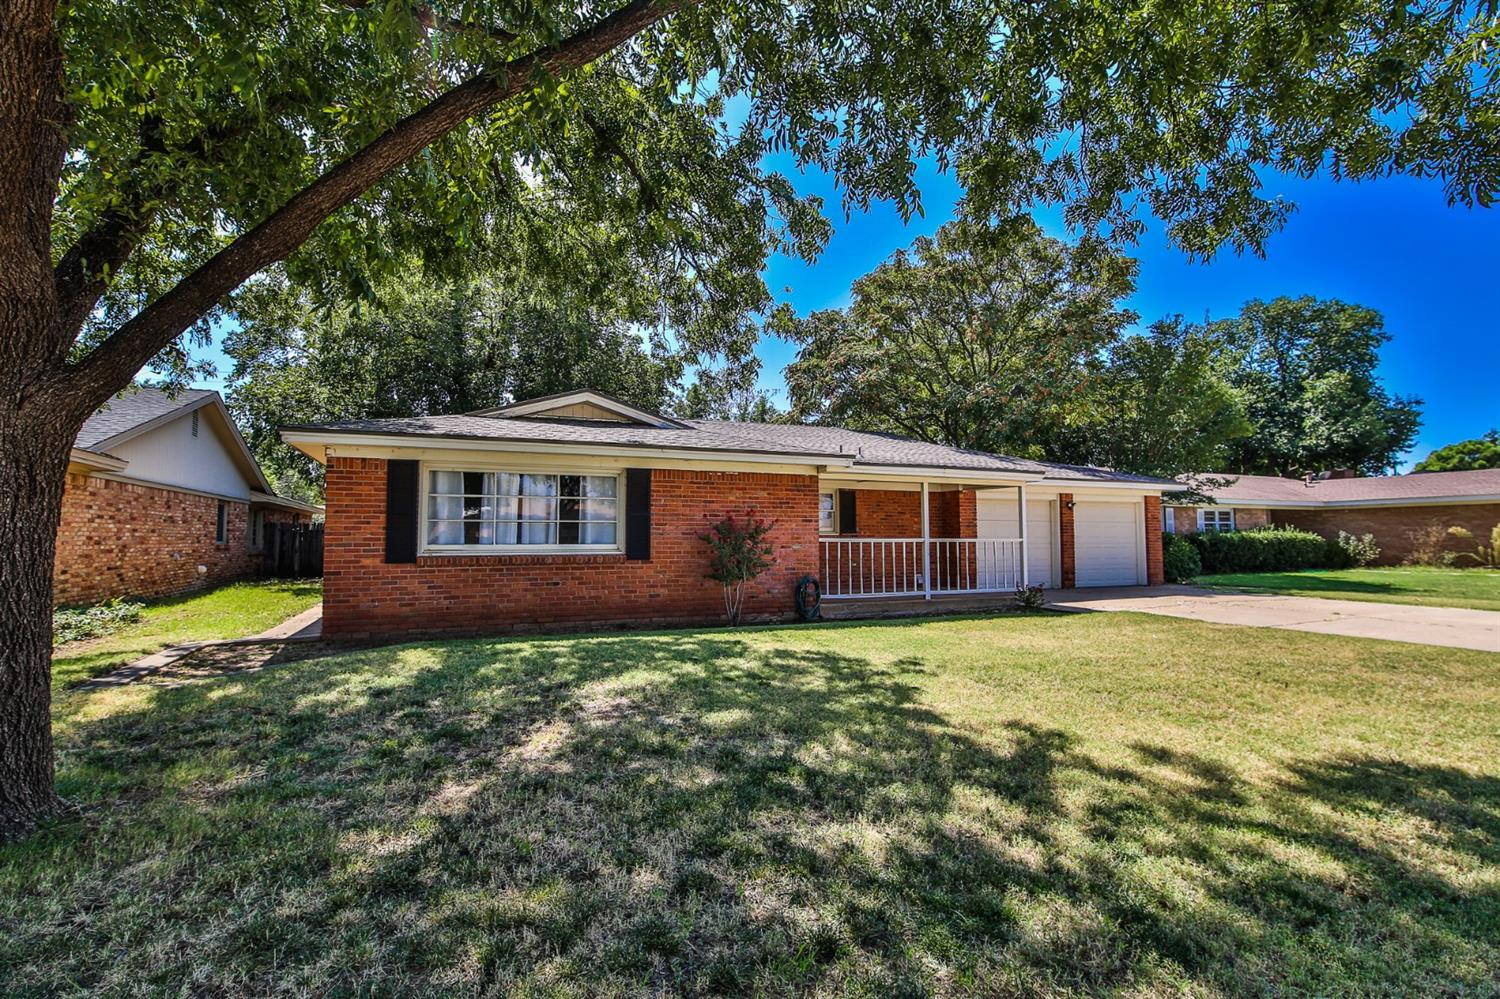 2309 52nd Street, Lubbock in Lubbock County, TX 79412 Home for Sale